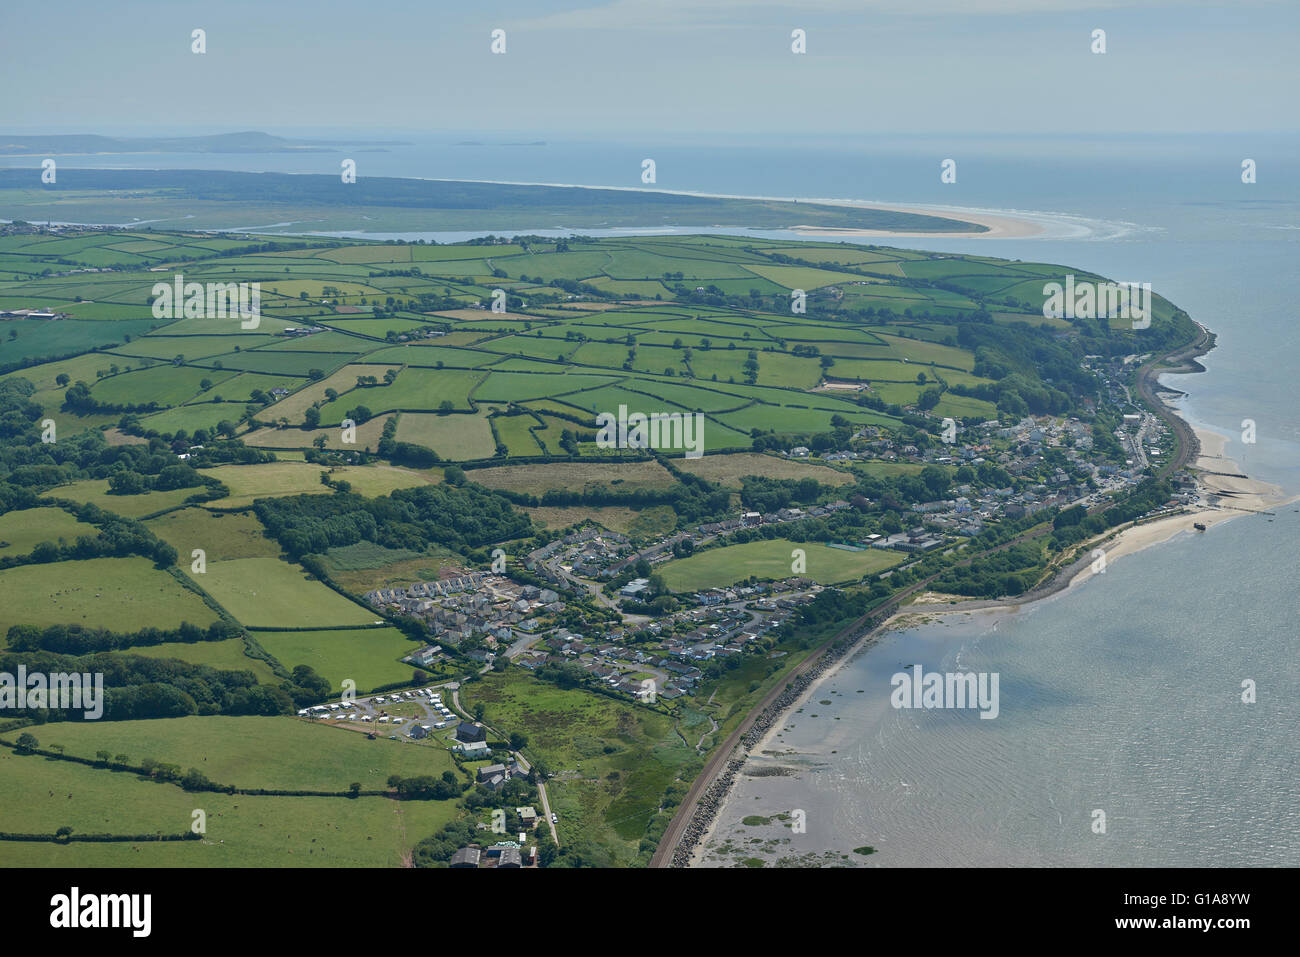 An aerial view of Ferryside, a village in Carmarthenshire, Wales - Stock Image